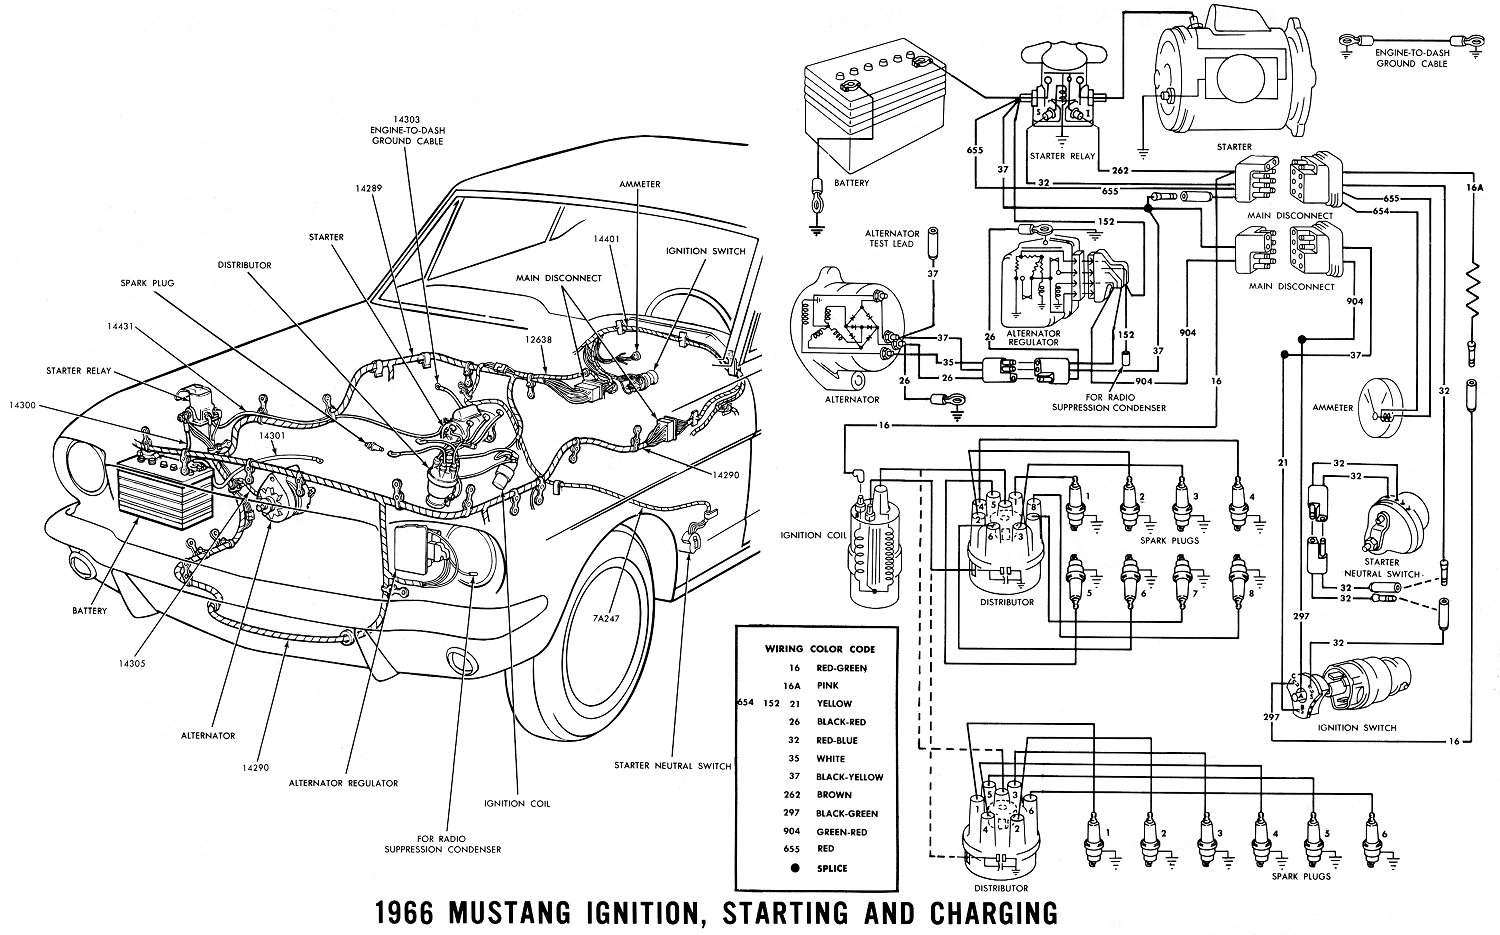 1966 Mustang Wiring Diagrams Average Joe Restoration Ignition Starting And Charging